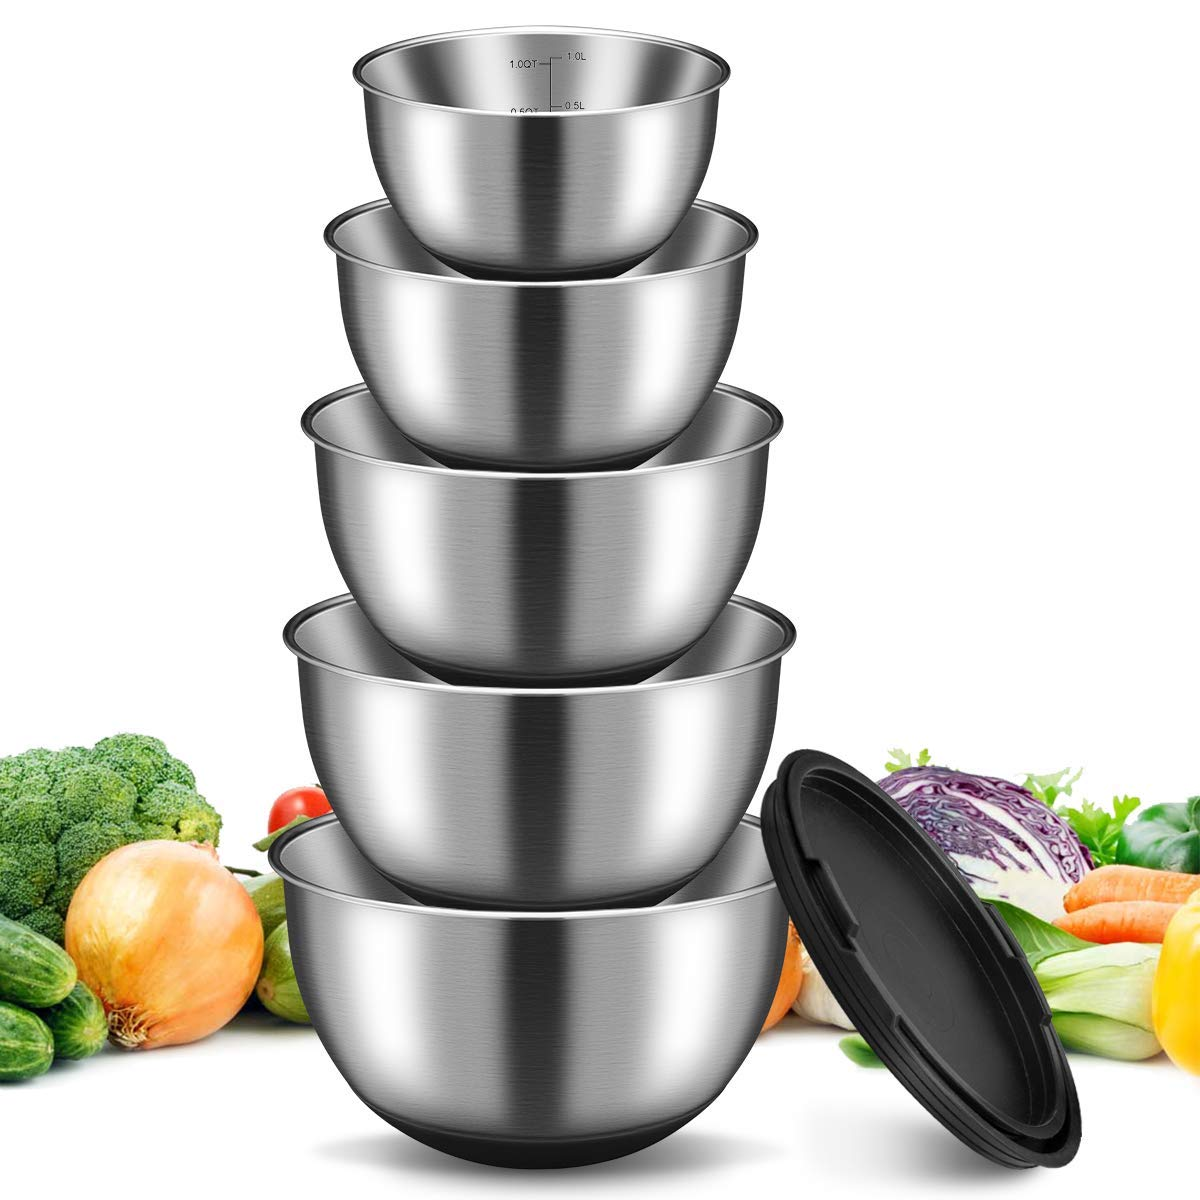 Stainless Steel Mixing Bowl With Lids 5 Set, GEEMAY Non-Slip Silicone Bottom Mixing Bowls, for Beating, Stackable Storage, Measurement Marks, Includes 1 QT, 2 QT, 2.5 QT, 3 QT, 4.5 QT